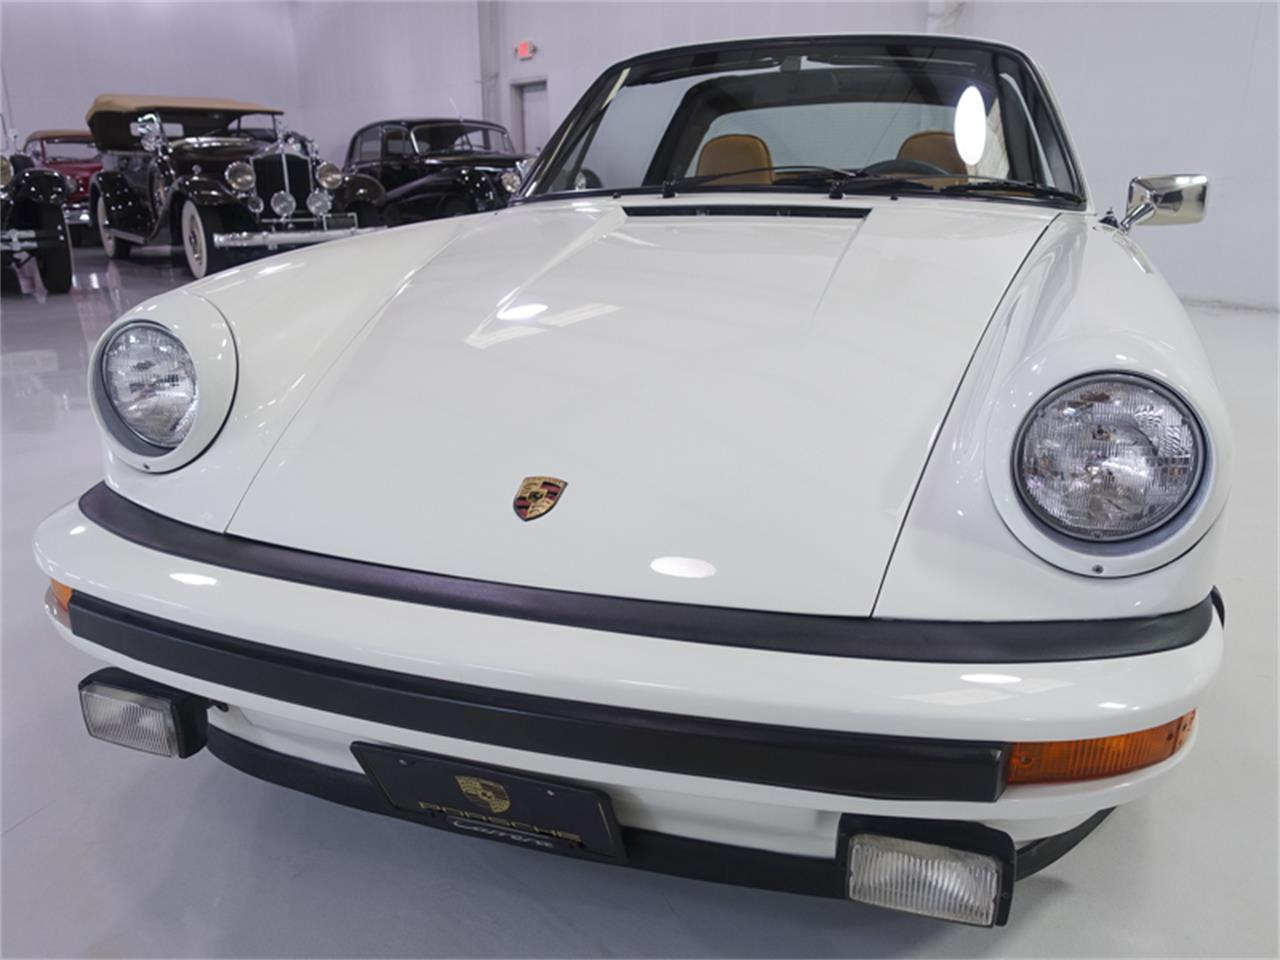 Large Picture of '75 Porsche 911 Carrera located in Missouri Offered by Daniel Schmitt & Co. - PGEE